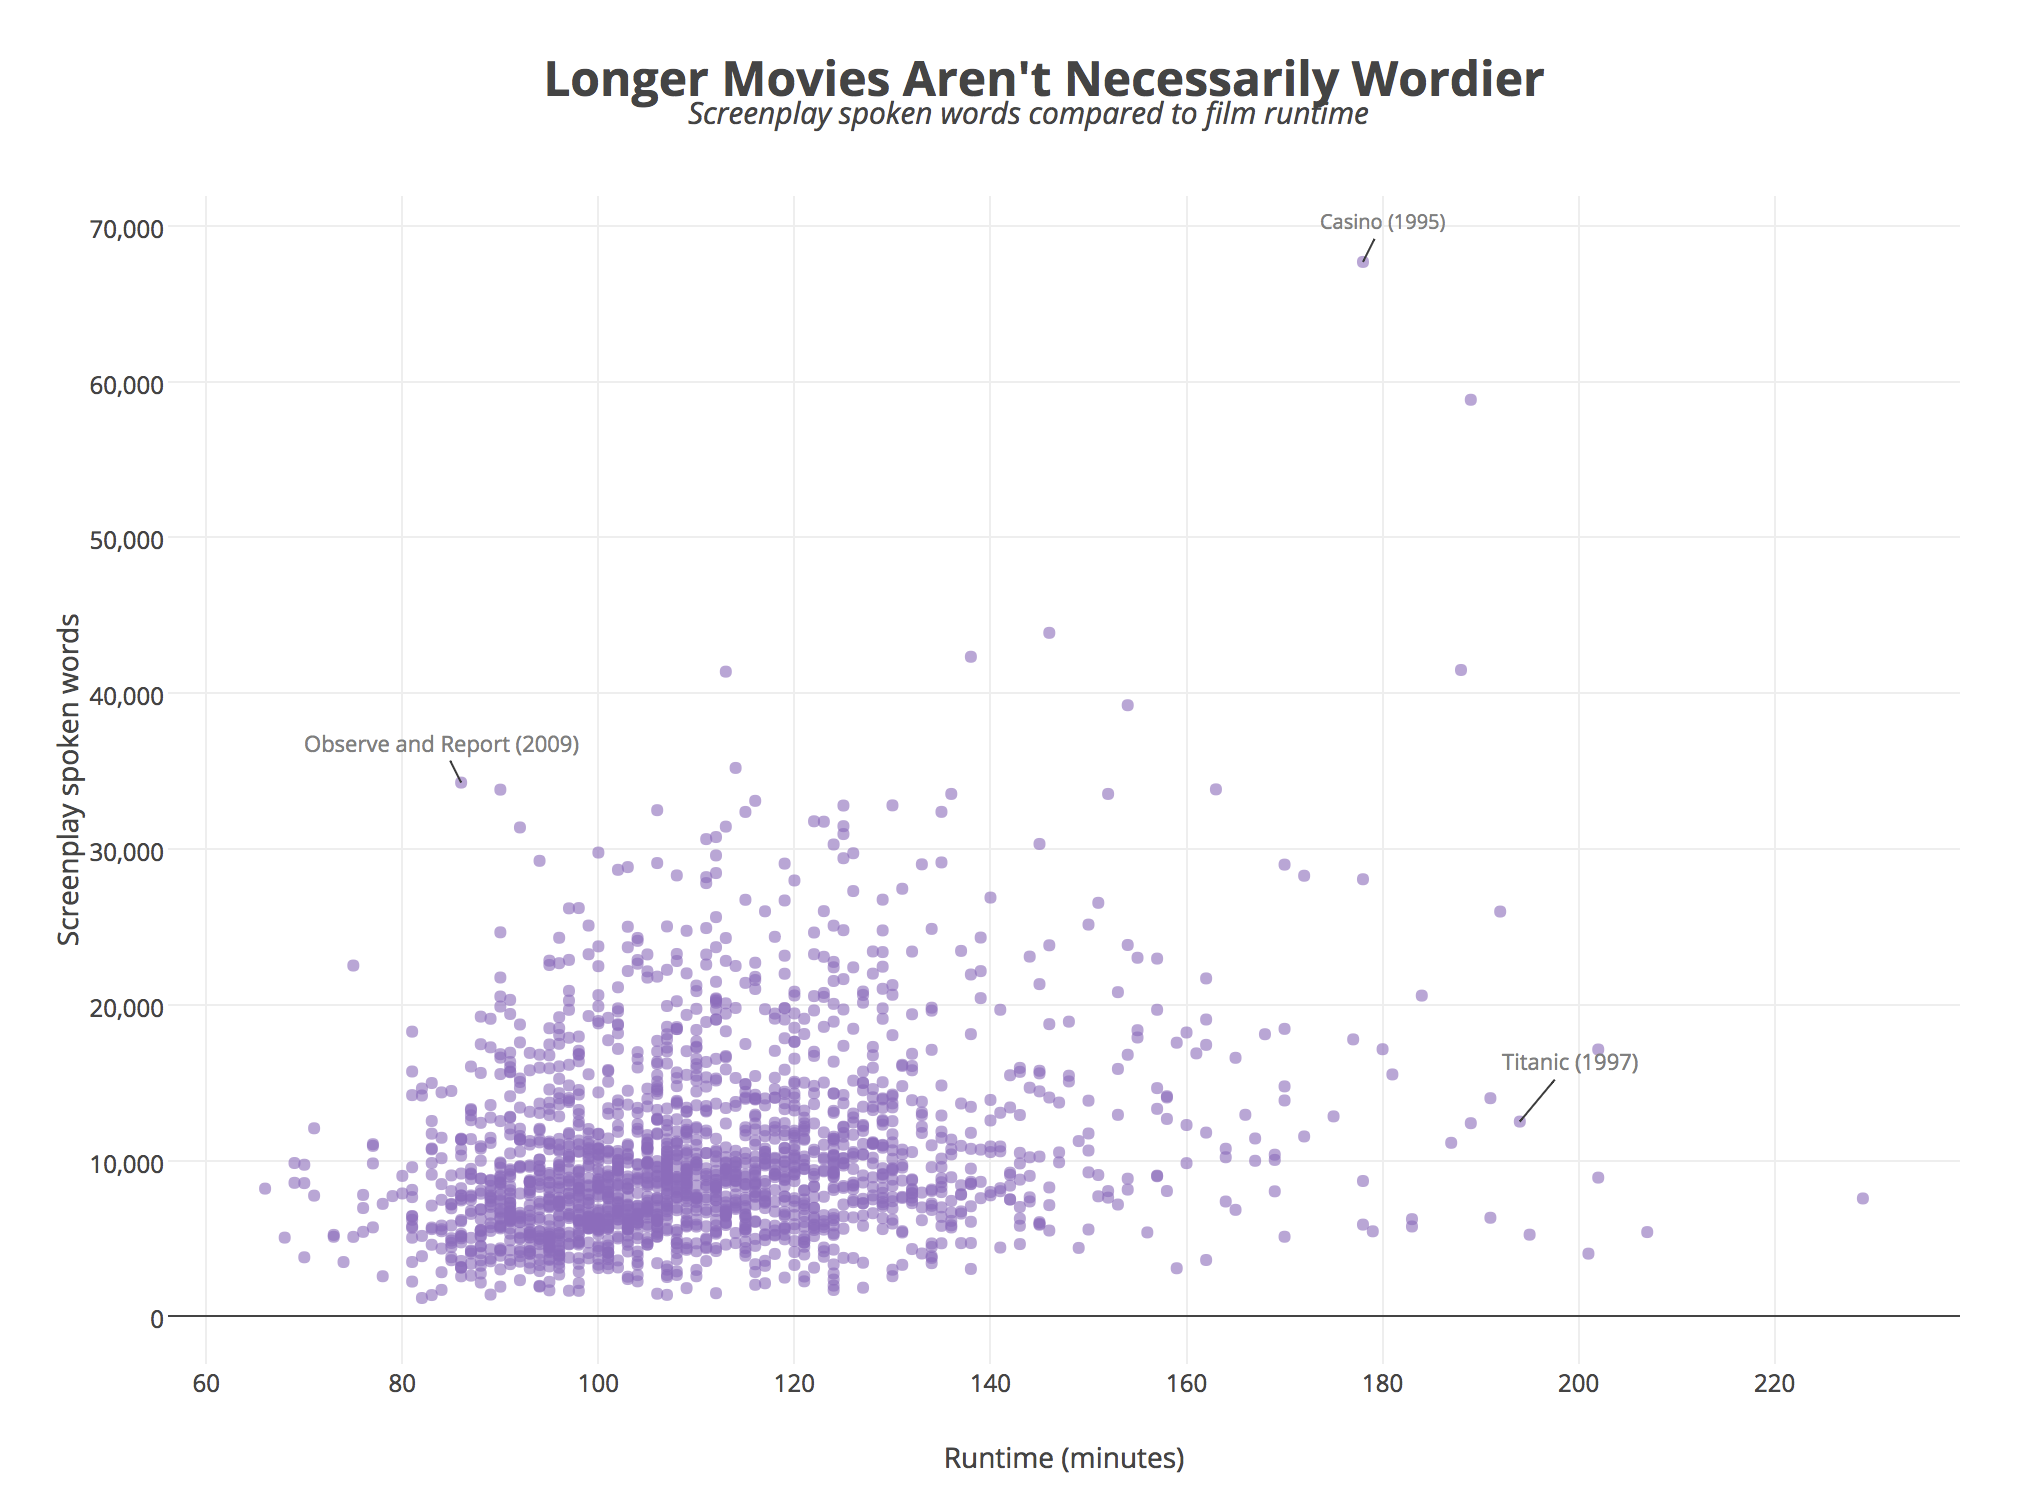 Longer Movies Aren't Necessarily Wordier